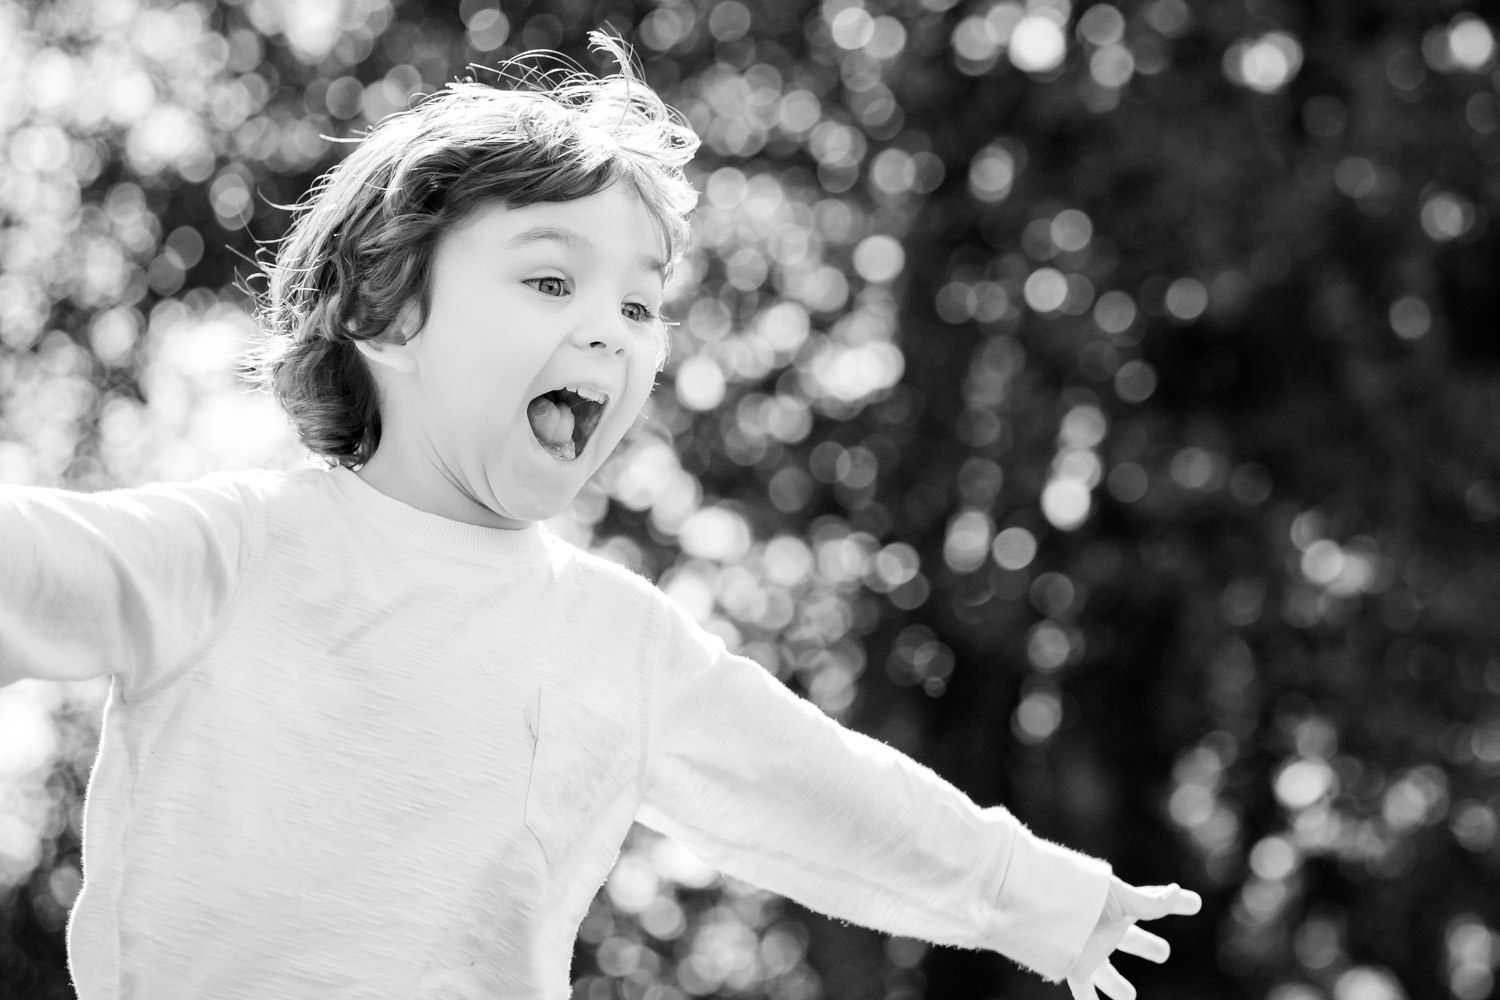 Boy running with arms outstretched during family photo shoot